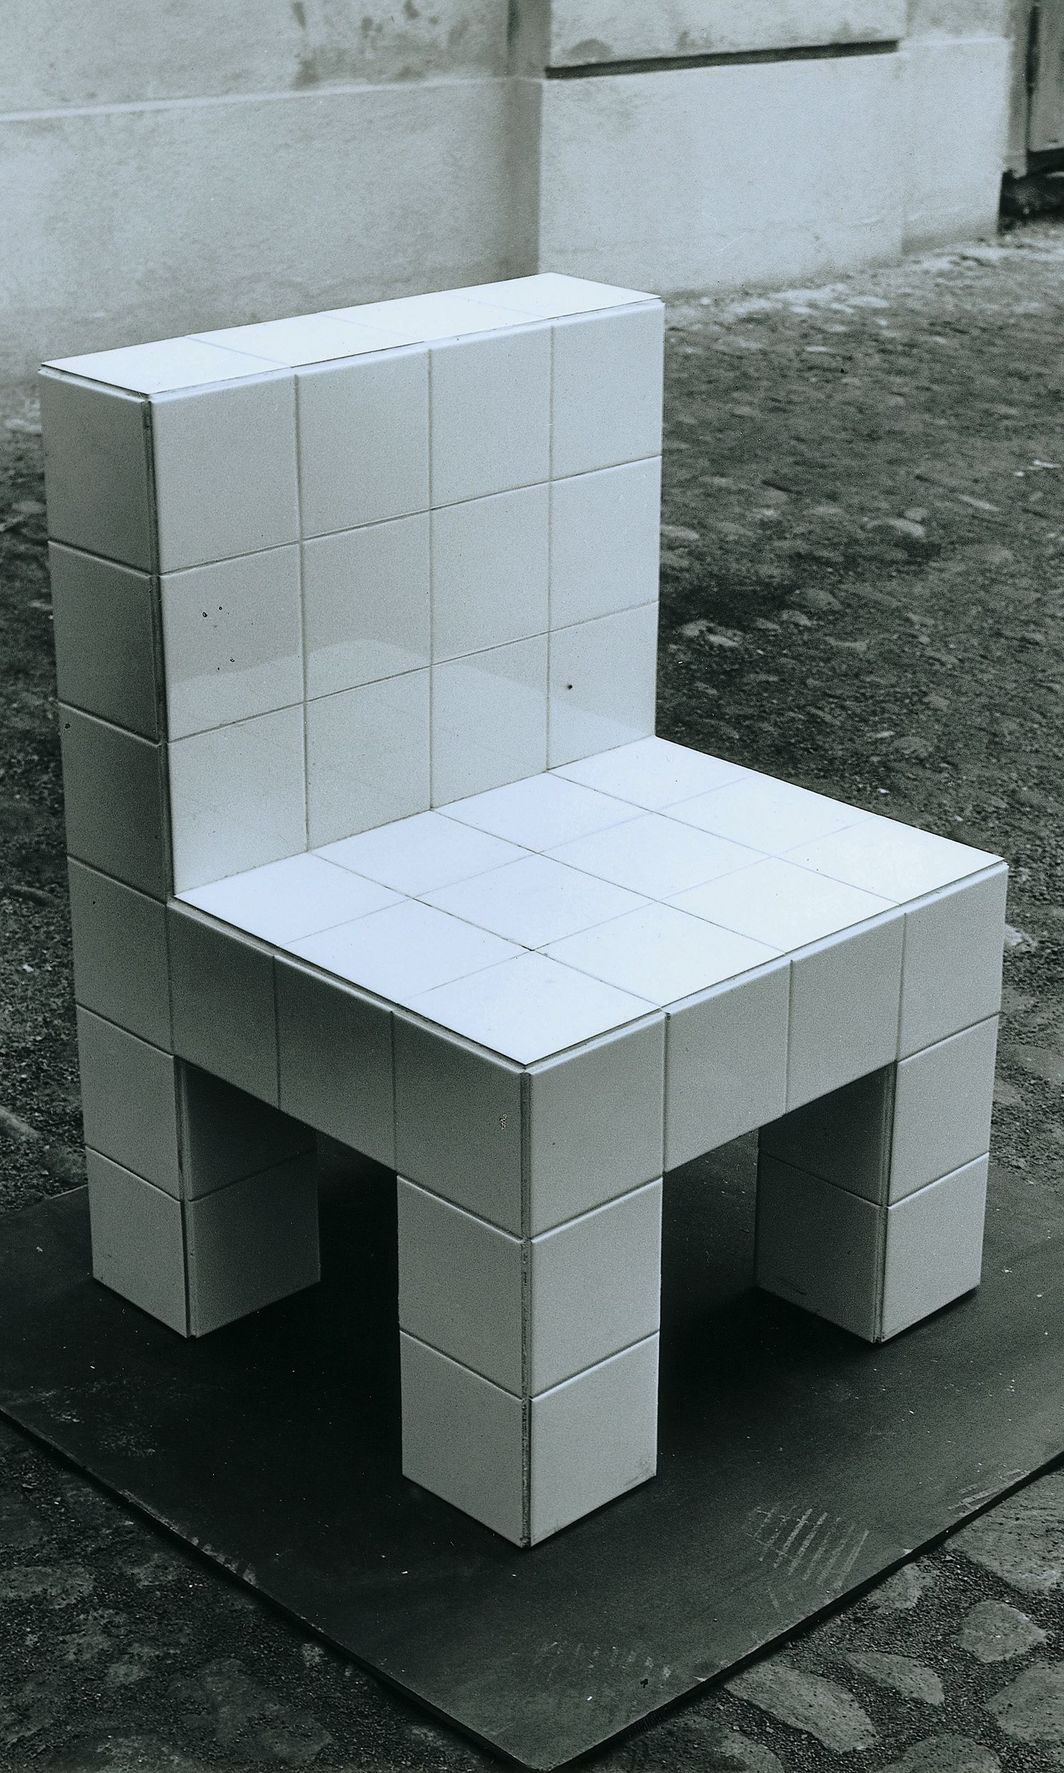 "Hans Hollein, Chair, 1972, white flagging on kern, 37 3/5 × 24 2/5 × 24 2/5""."